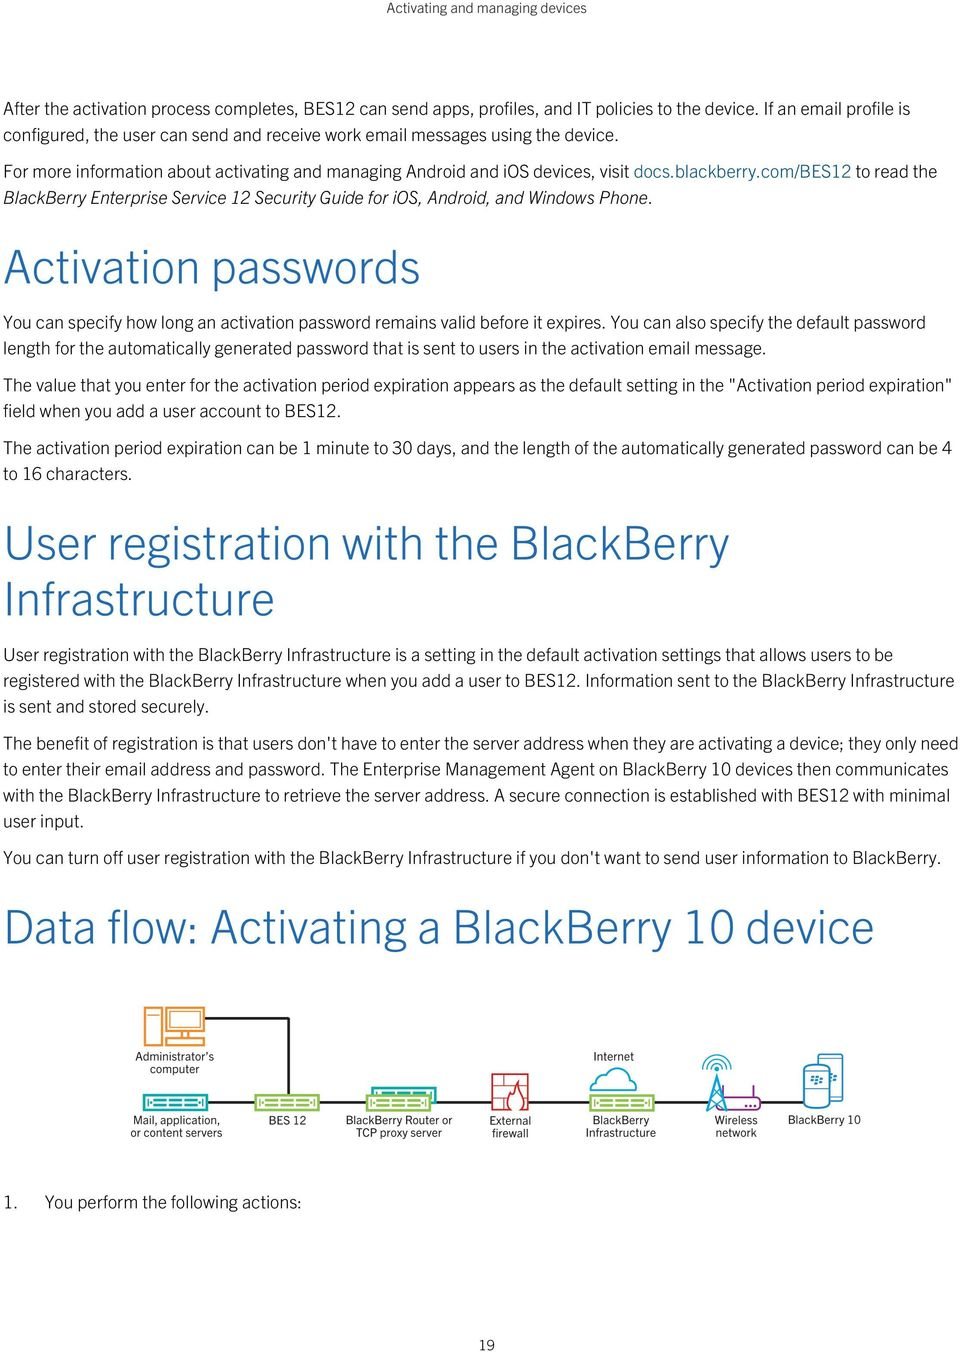 blackberry.com/bes12 to read the BlackBerry Enterprise Service 12 Security Guide for ios, Android, and Windows Phone.